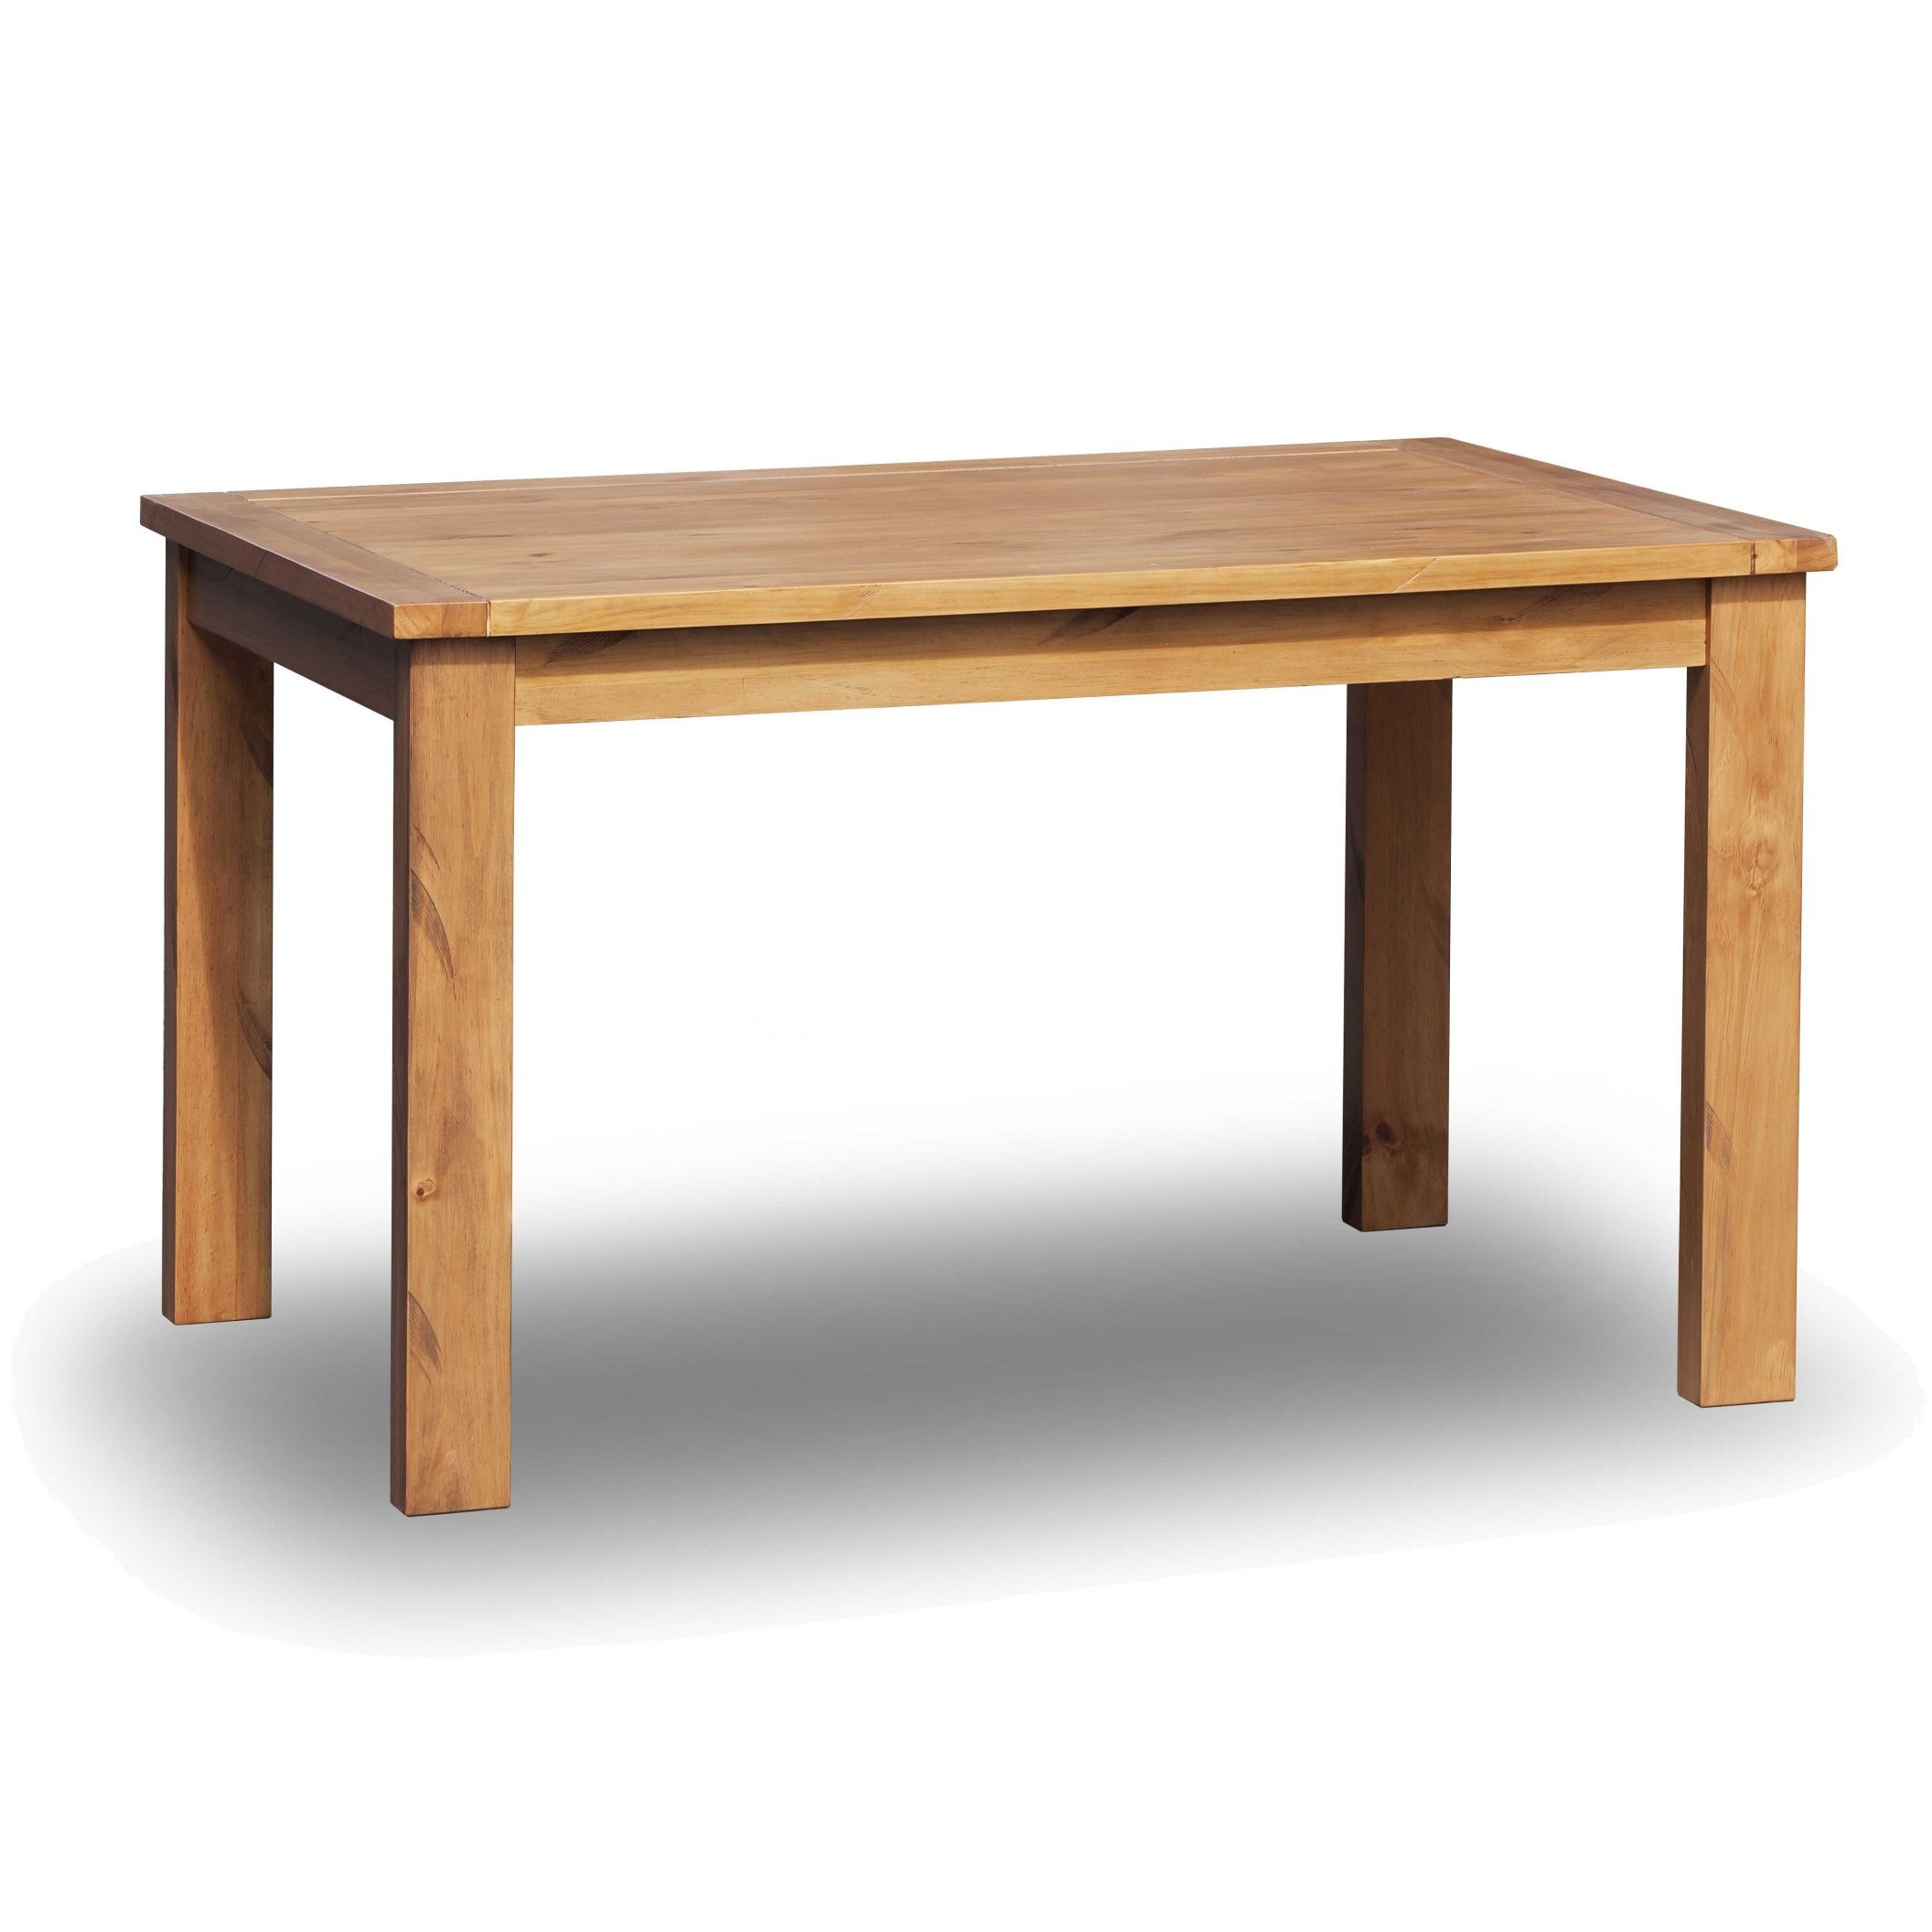 Boden pine dining table online furniture from homesdirect365 for Boden direct uk